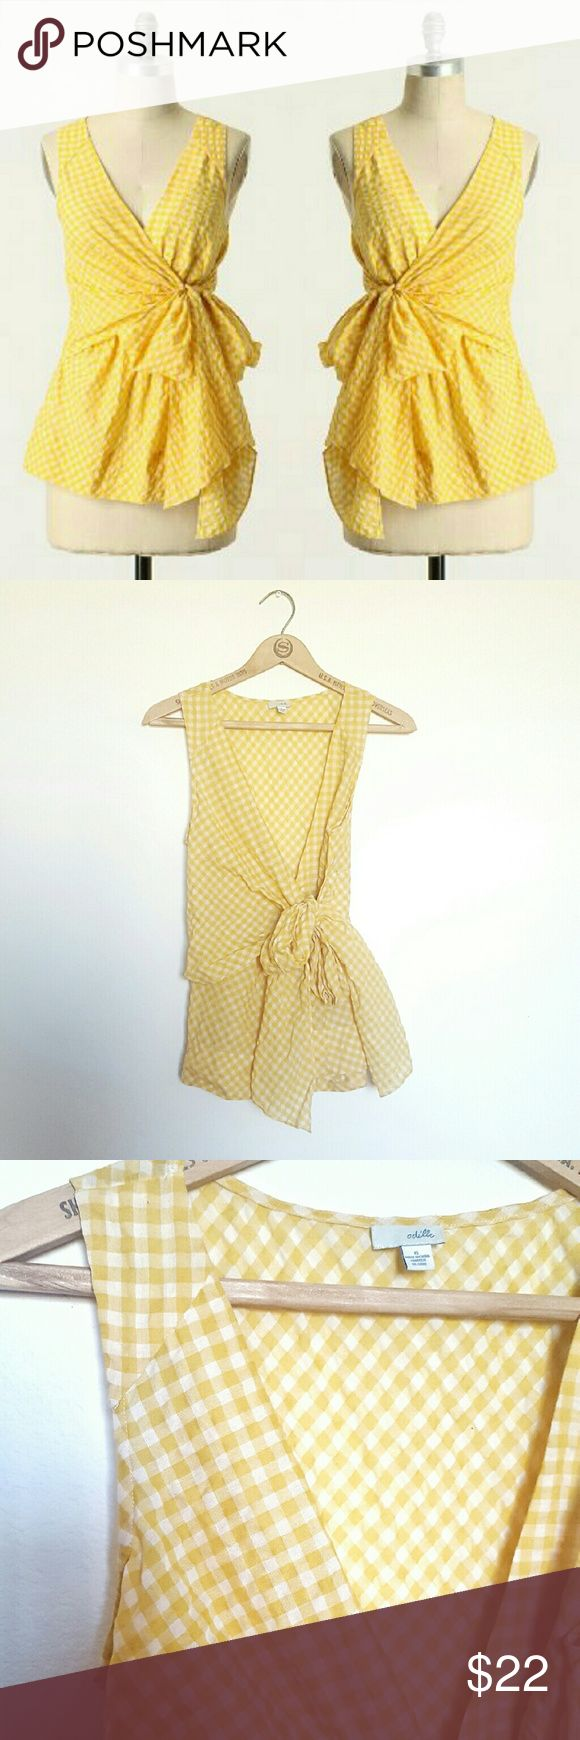 Anthropologie Yellow Gingham Sleeveless Blouse Perfect picnic attire, or fun for any sunny outfit, this yellow and white cotton sleeveless blouse features a faux wrap style sash for some extra flounce. Excellent condition and super flattering! Label is Odille. Anthropologie Tops